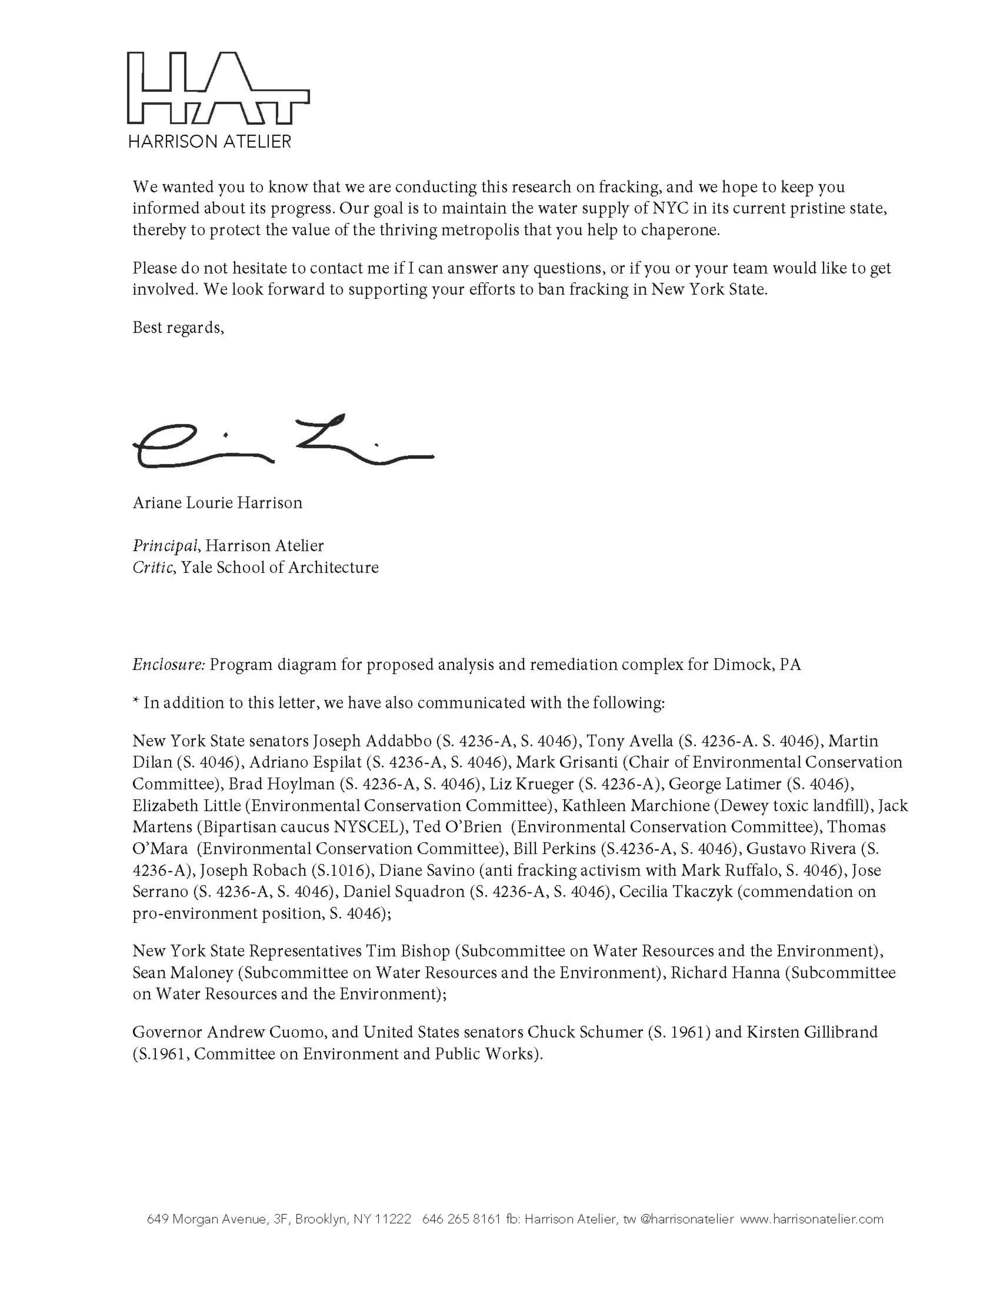 Harrison, Letter to Mayor de Blasio 4 16 2014_Page_4.jpg